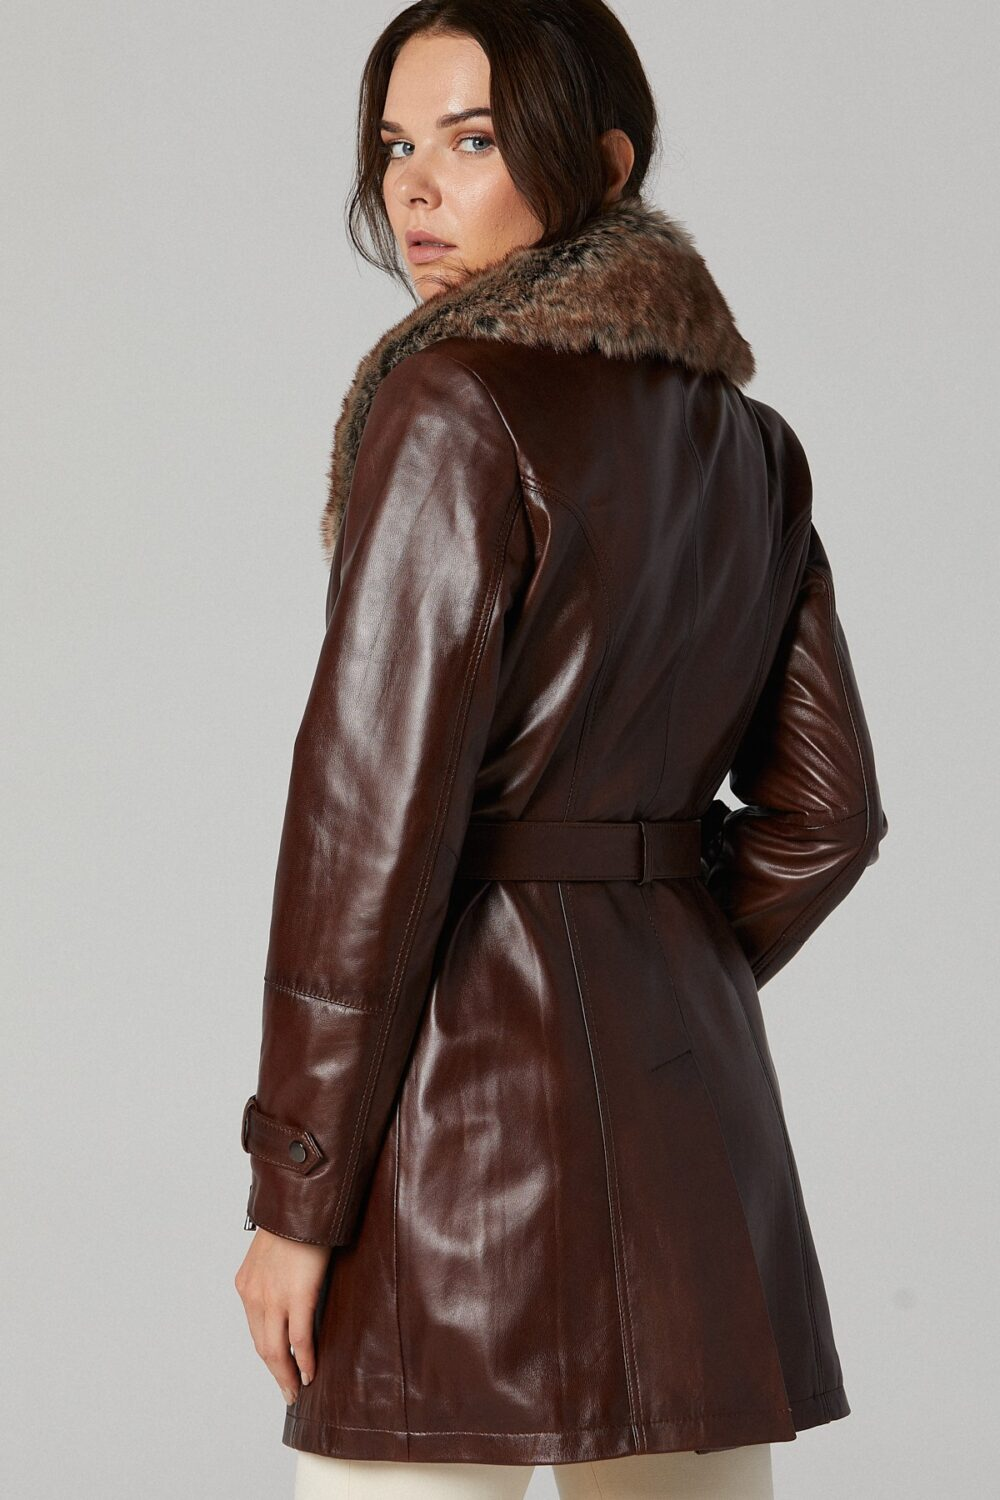 Long Leather Coat With Fur Collar